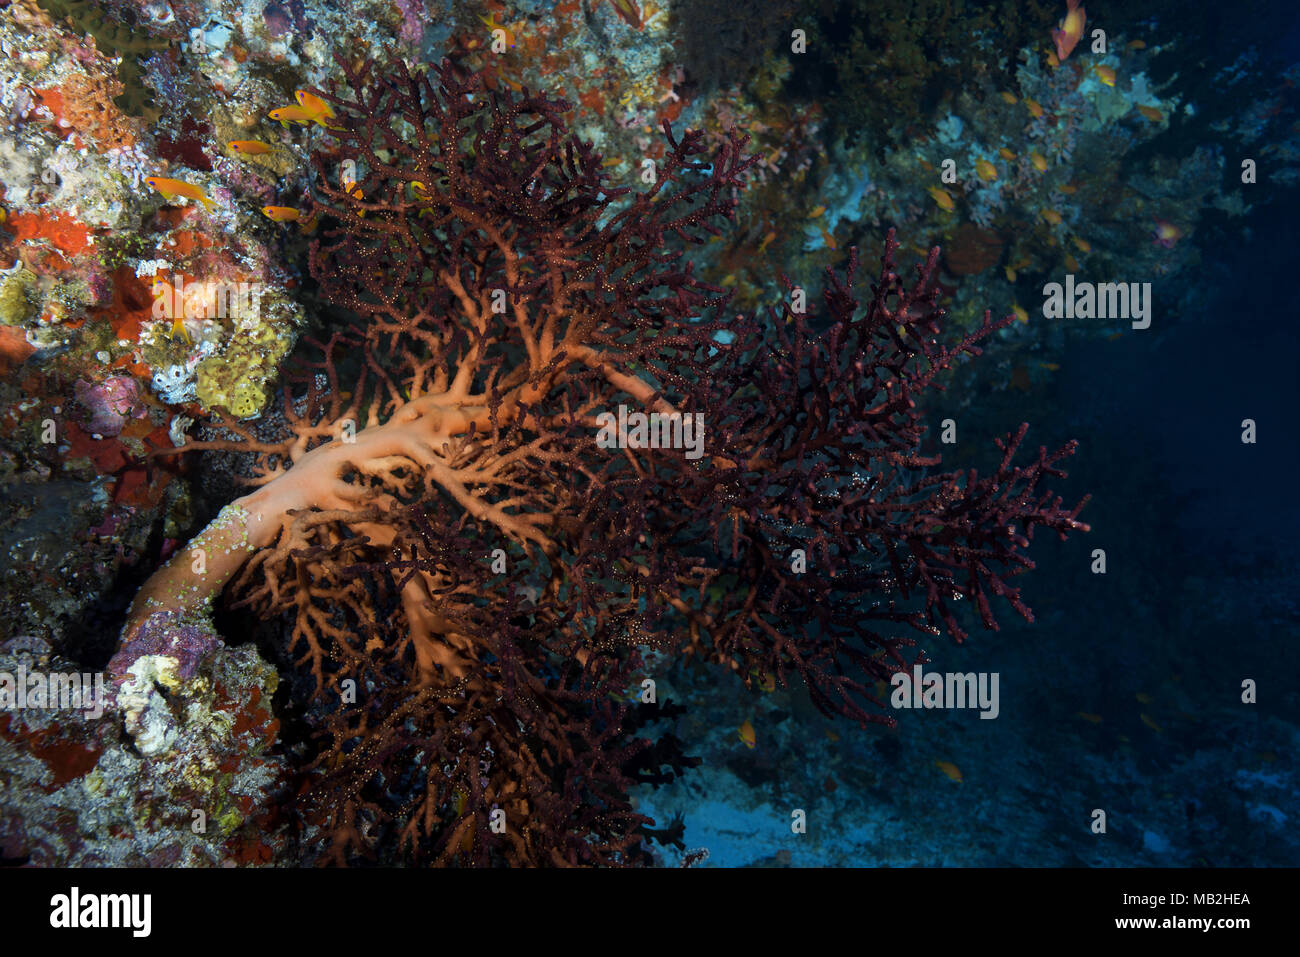 Cherry blossom coral or Godeffroy's Soft Coral (Siphonogorgia godeffroyi) - Stock Image